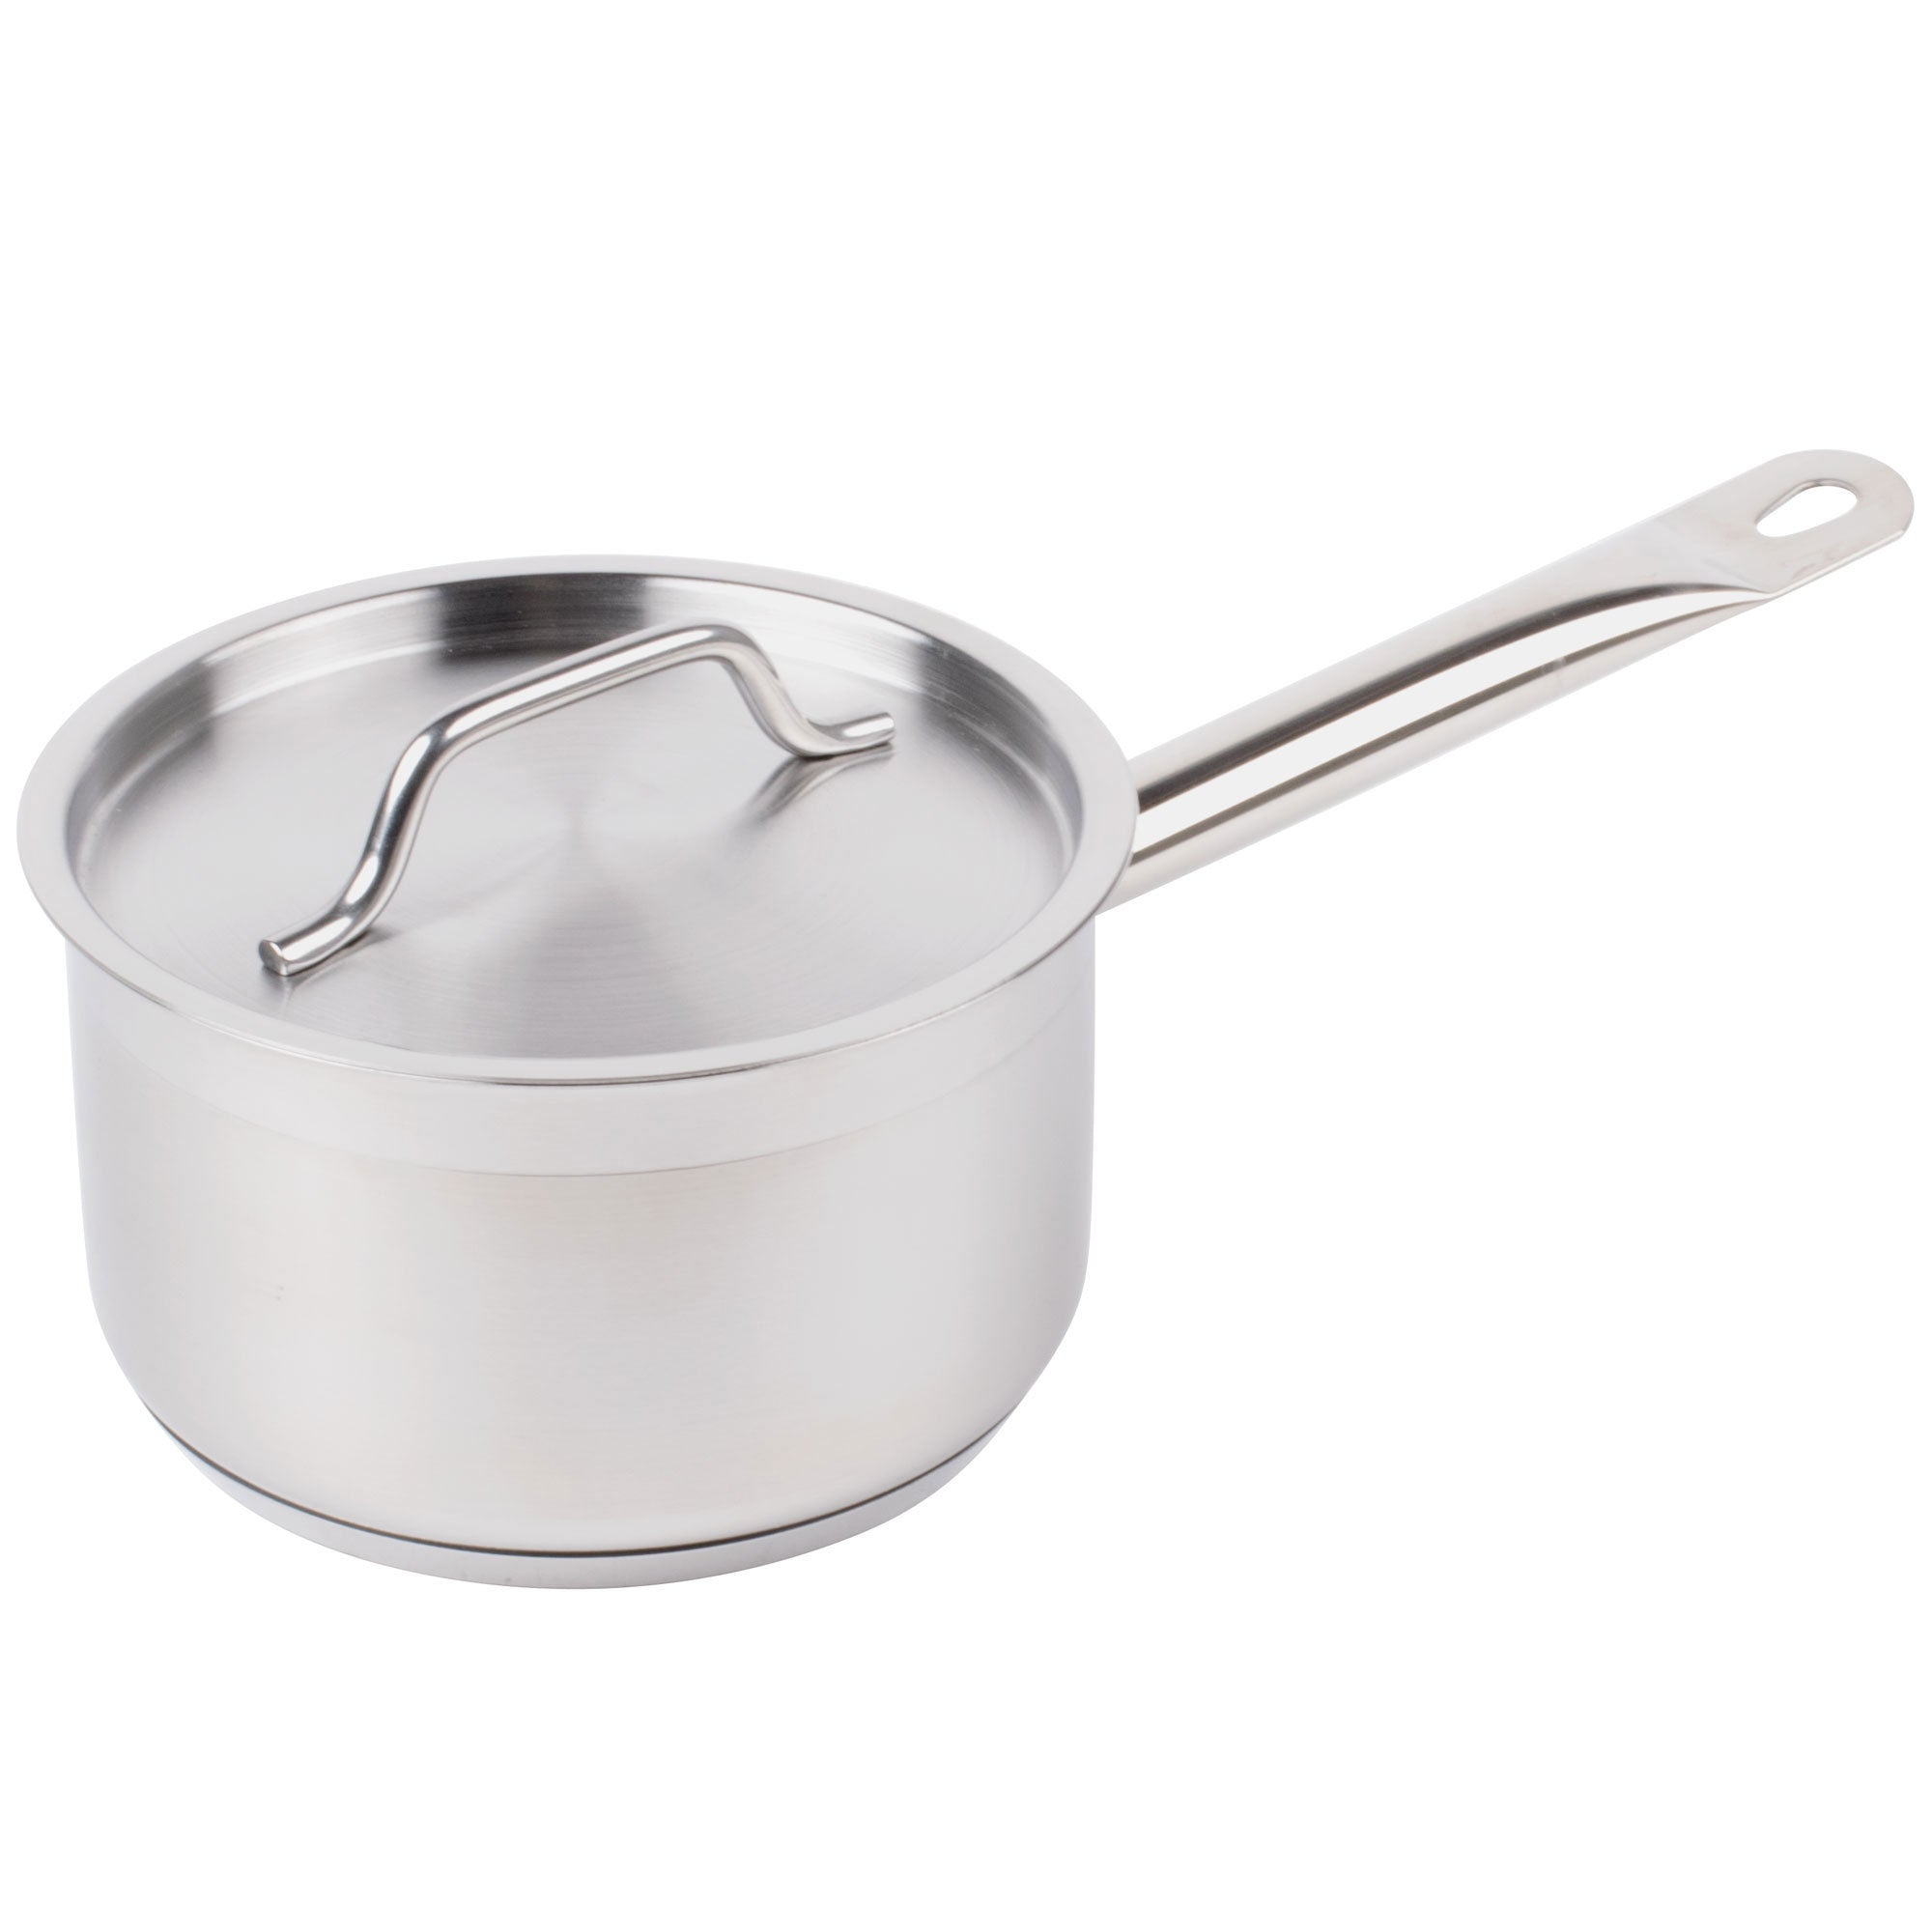 3 1/2 Qt 18/8 Stainless Steel Sauce Pan With Cover